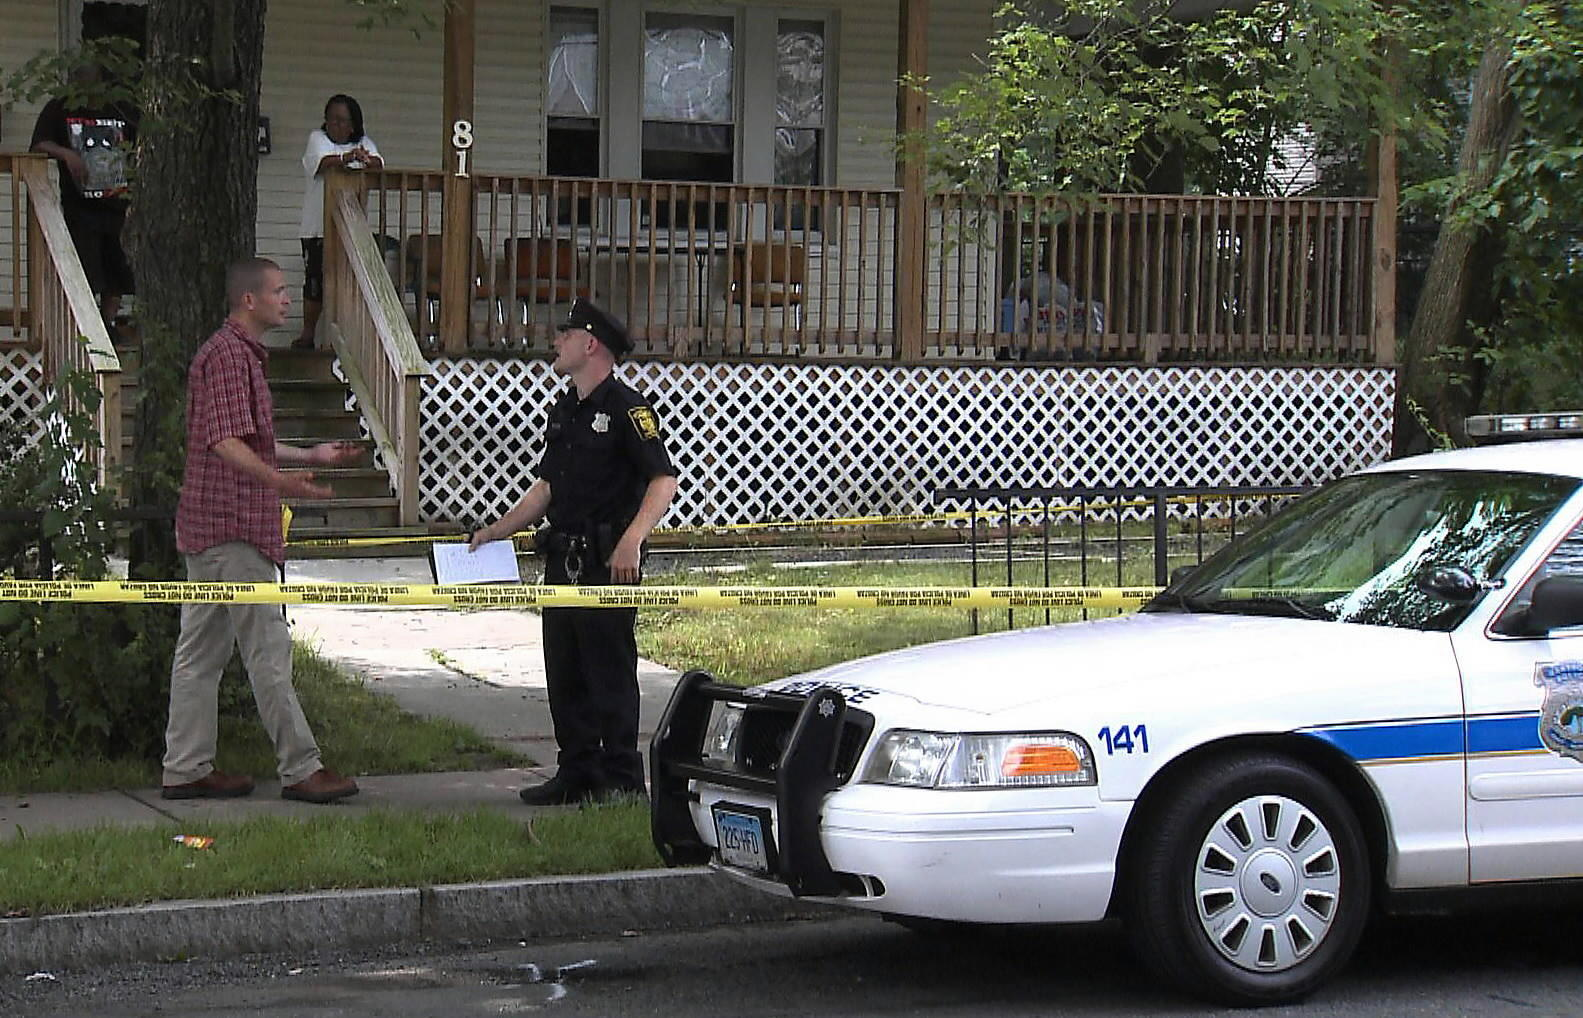 Hartford police investigate a shooting death near Jumoke Academy in Hartford's North End in July 2013. Neighborhood foot patrols can help community relations by putting police in closer contact with residents.